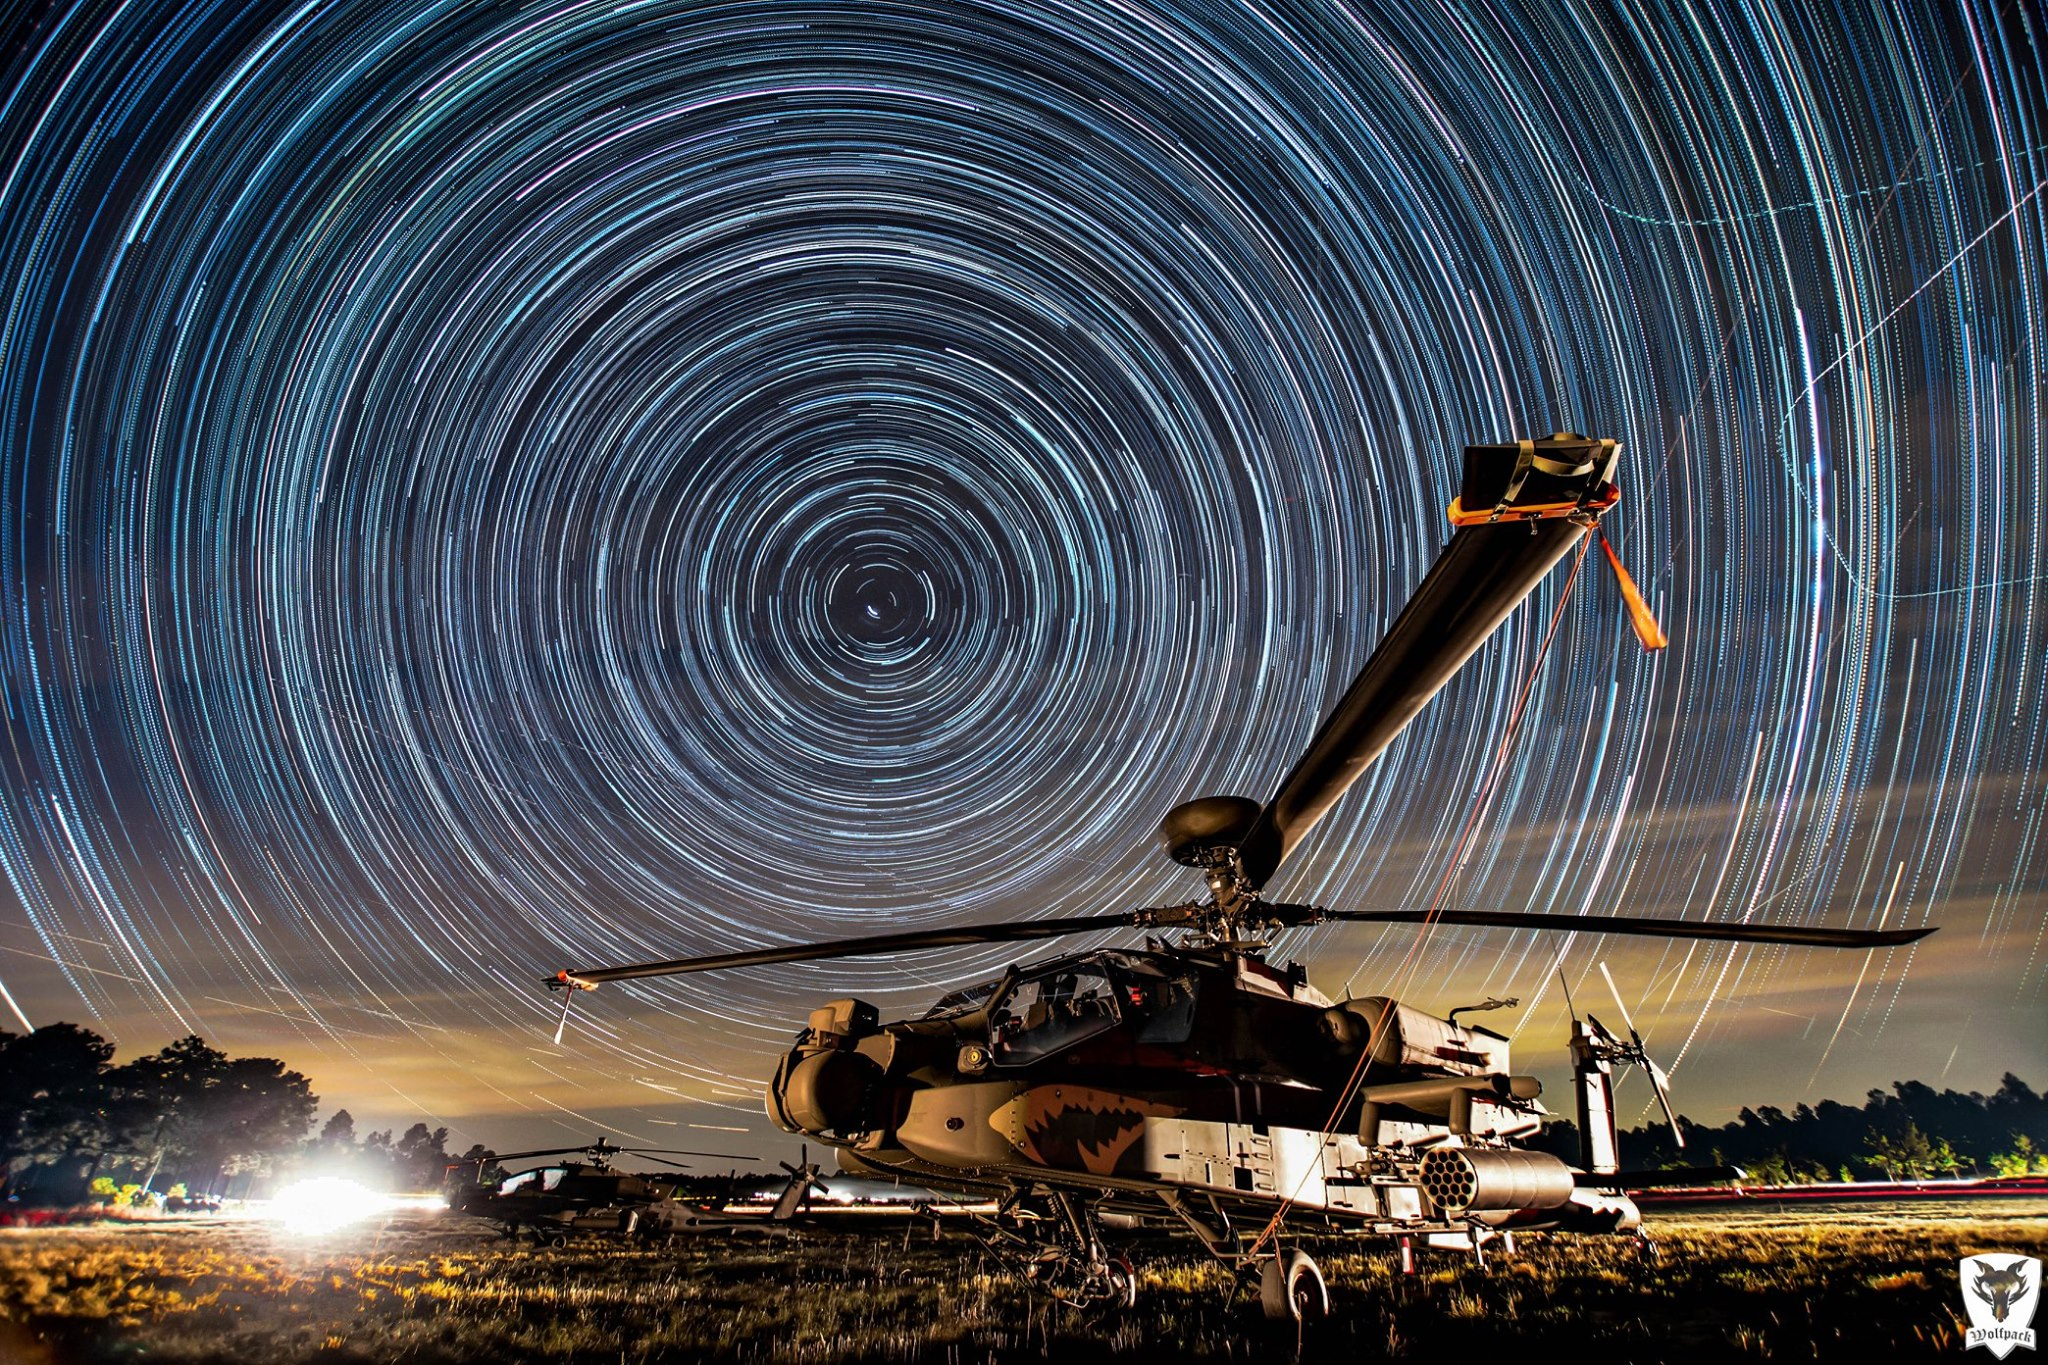 Boeing AH-64 Apache star trails. Photo submitted by Instagram user @1_82arb using #verticalmag